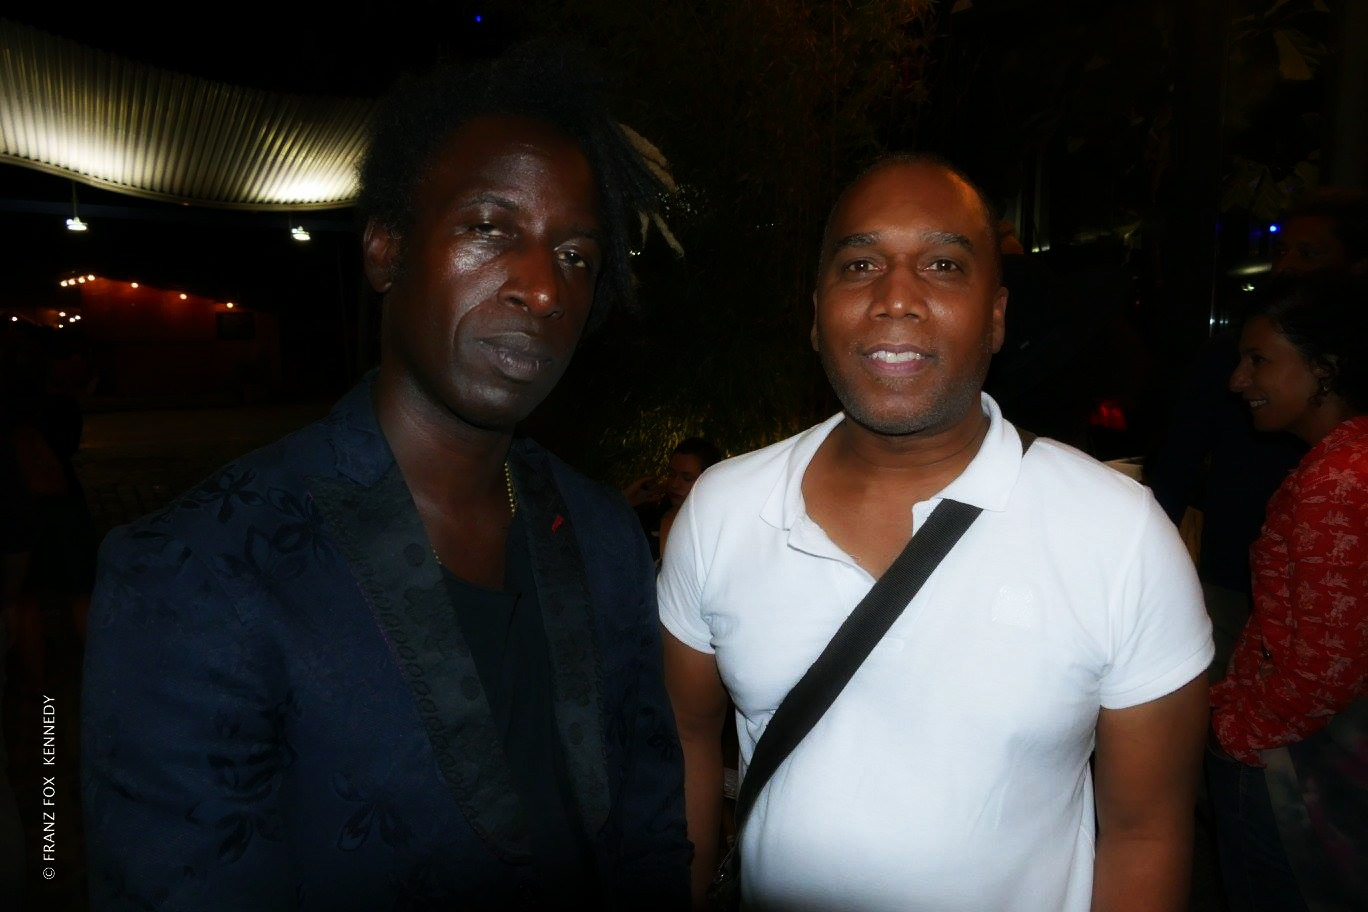 Saul Williams Romello Rivers Jazz-a-la-Villette